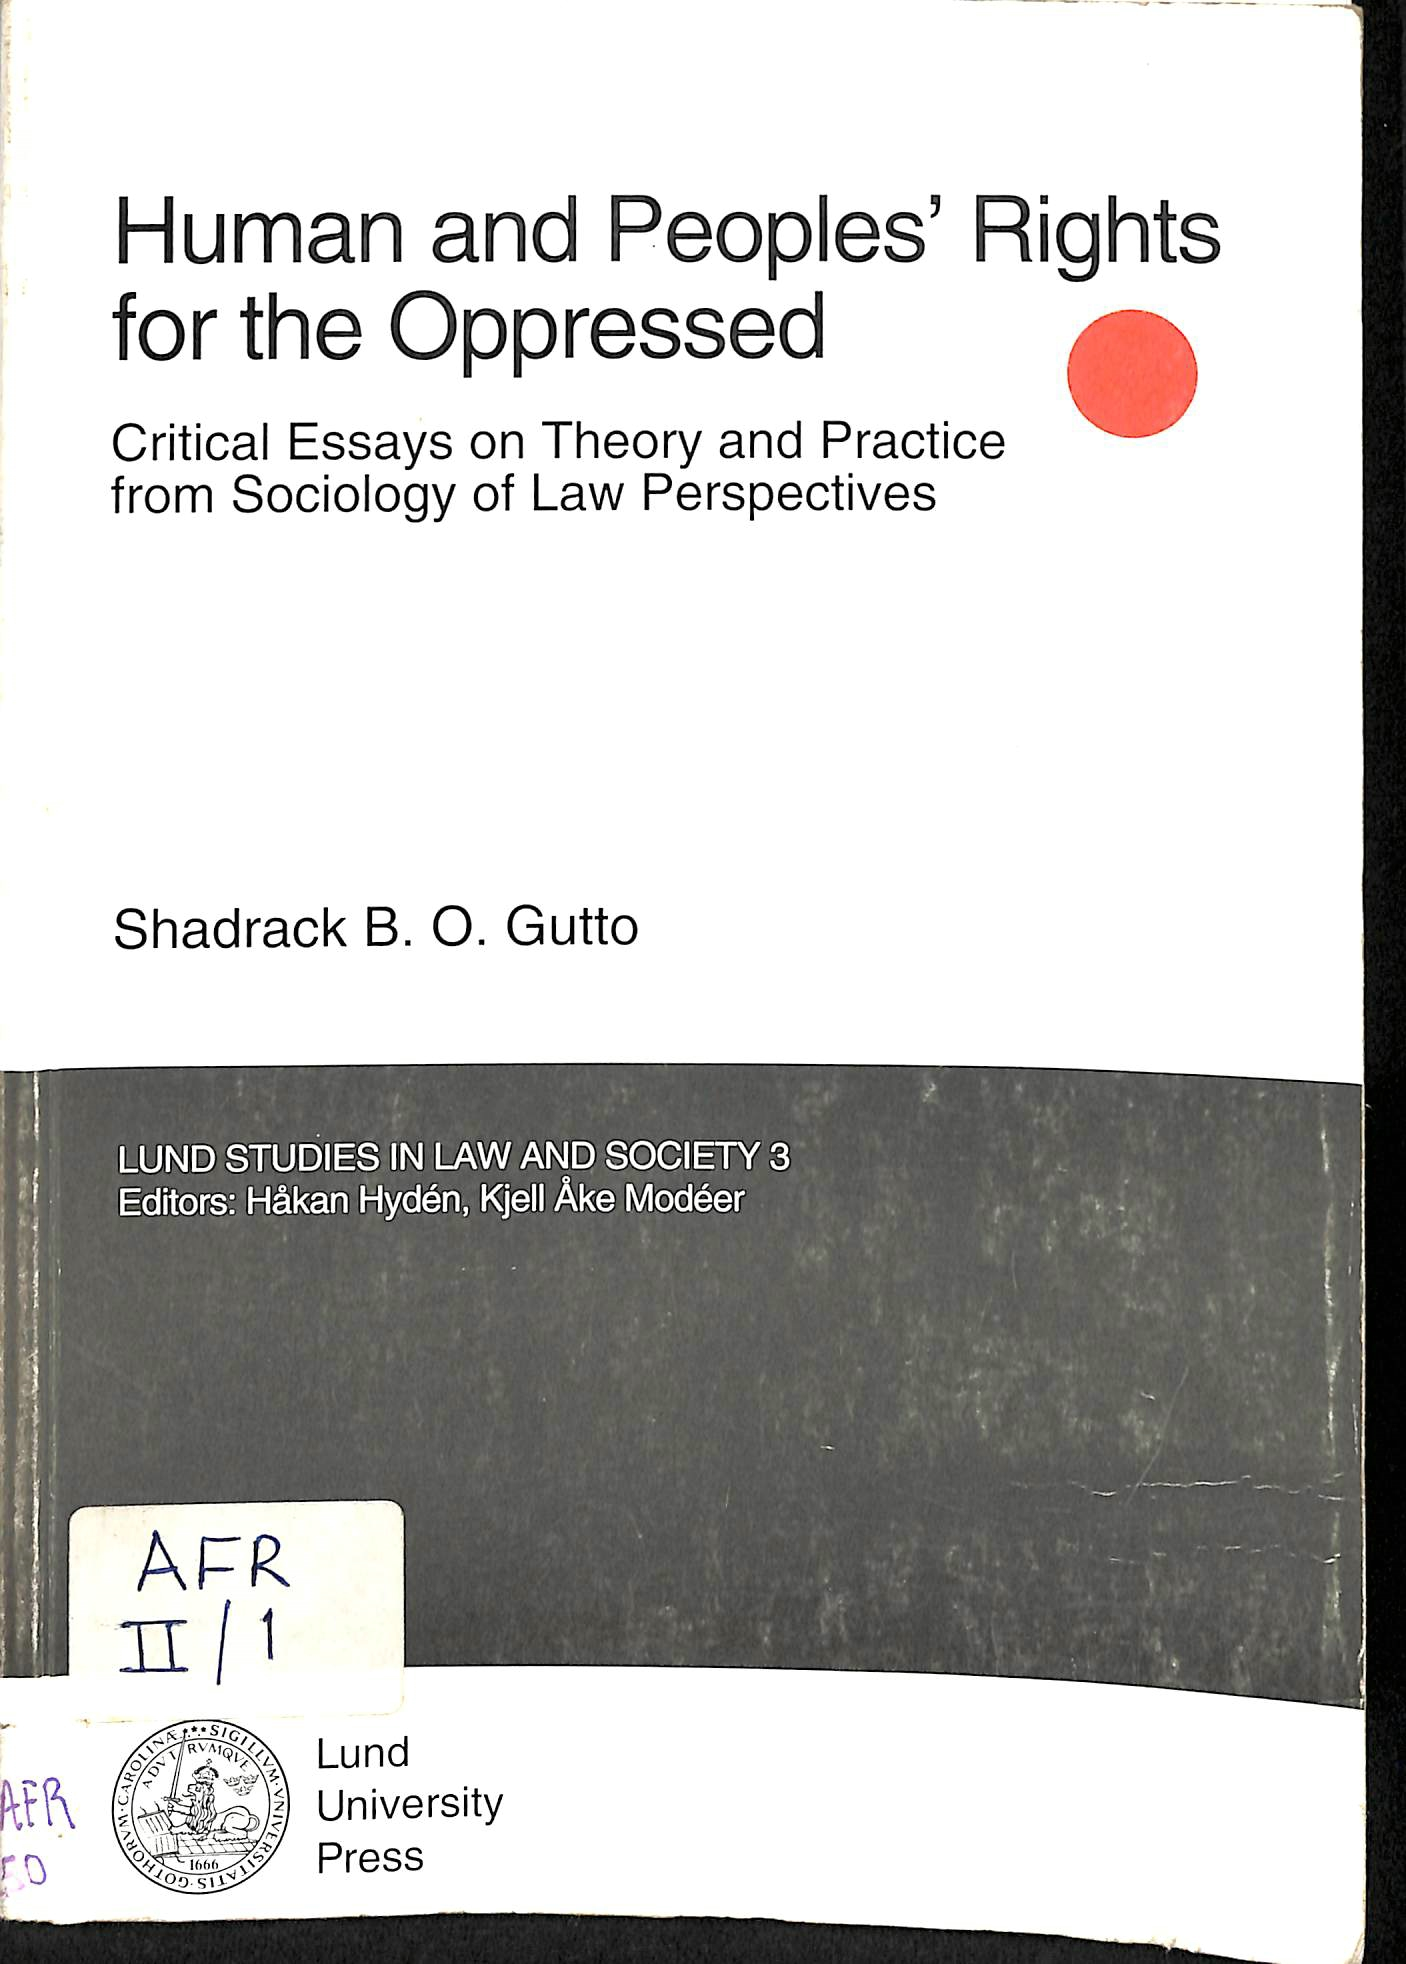 Human and peoples' rights for the oppressed